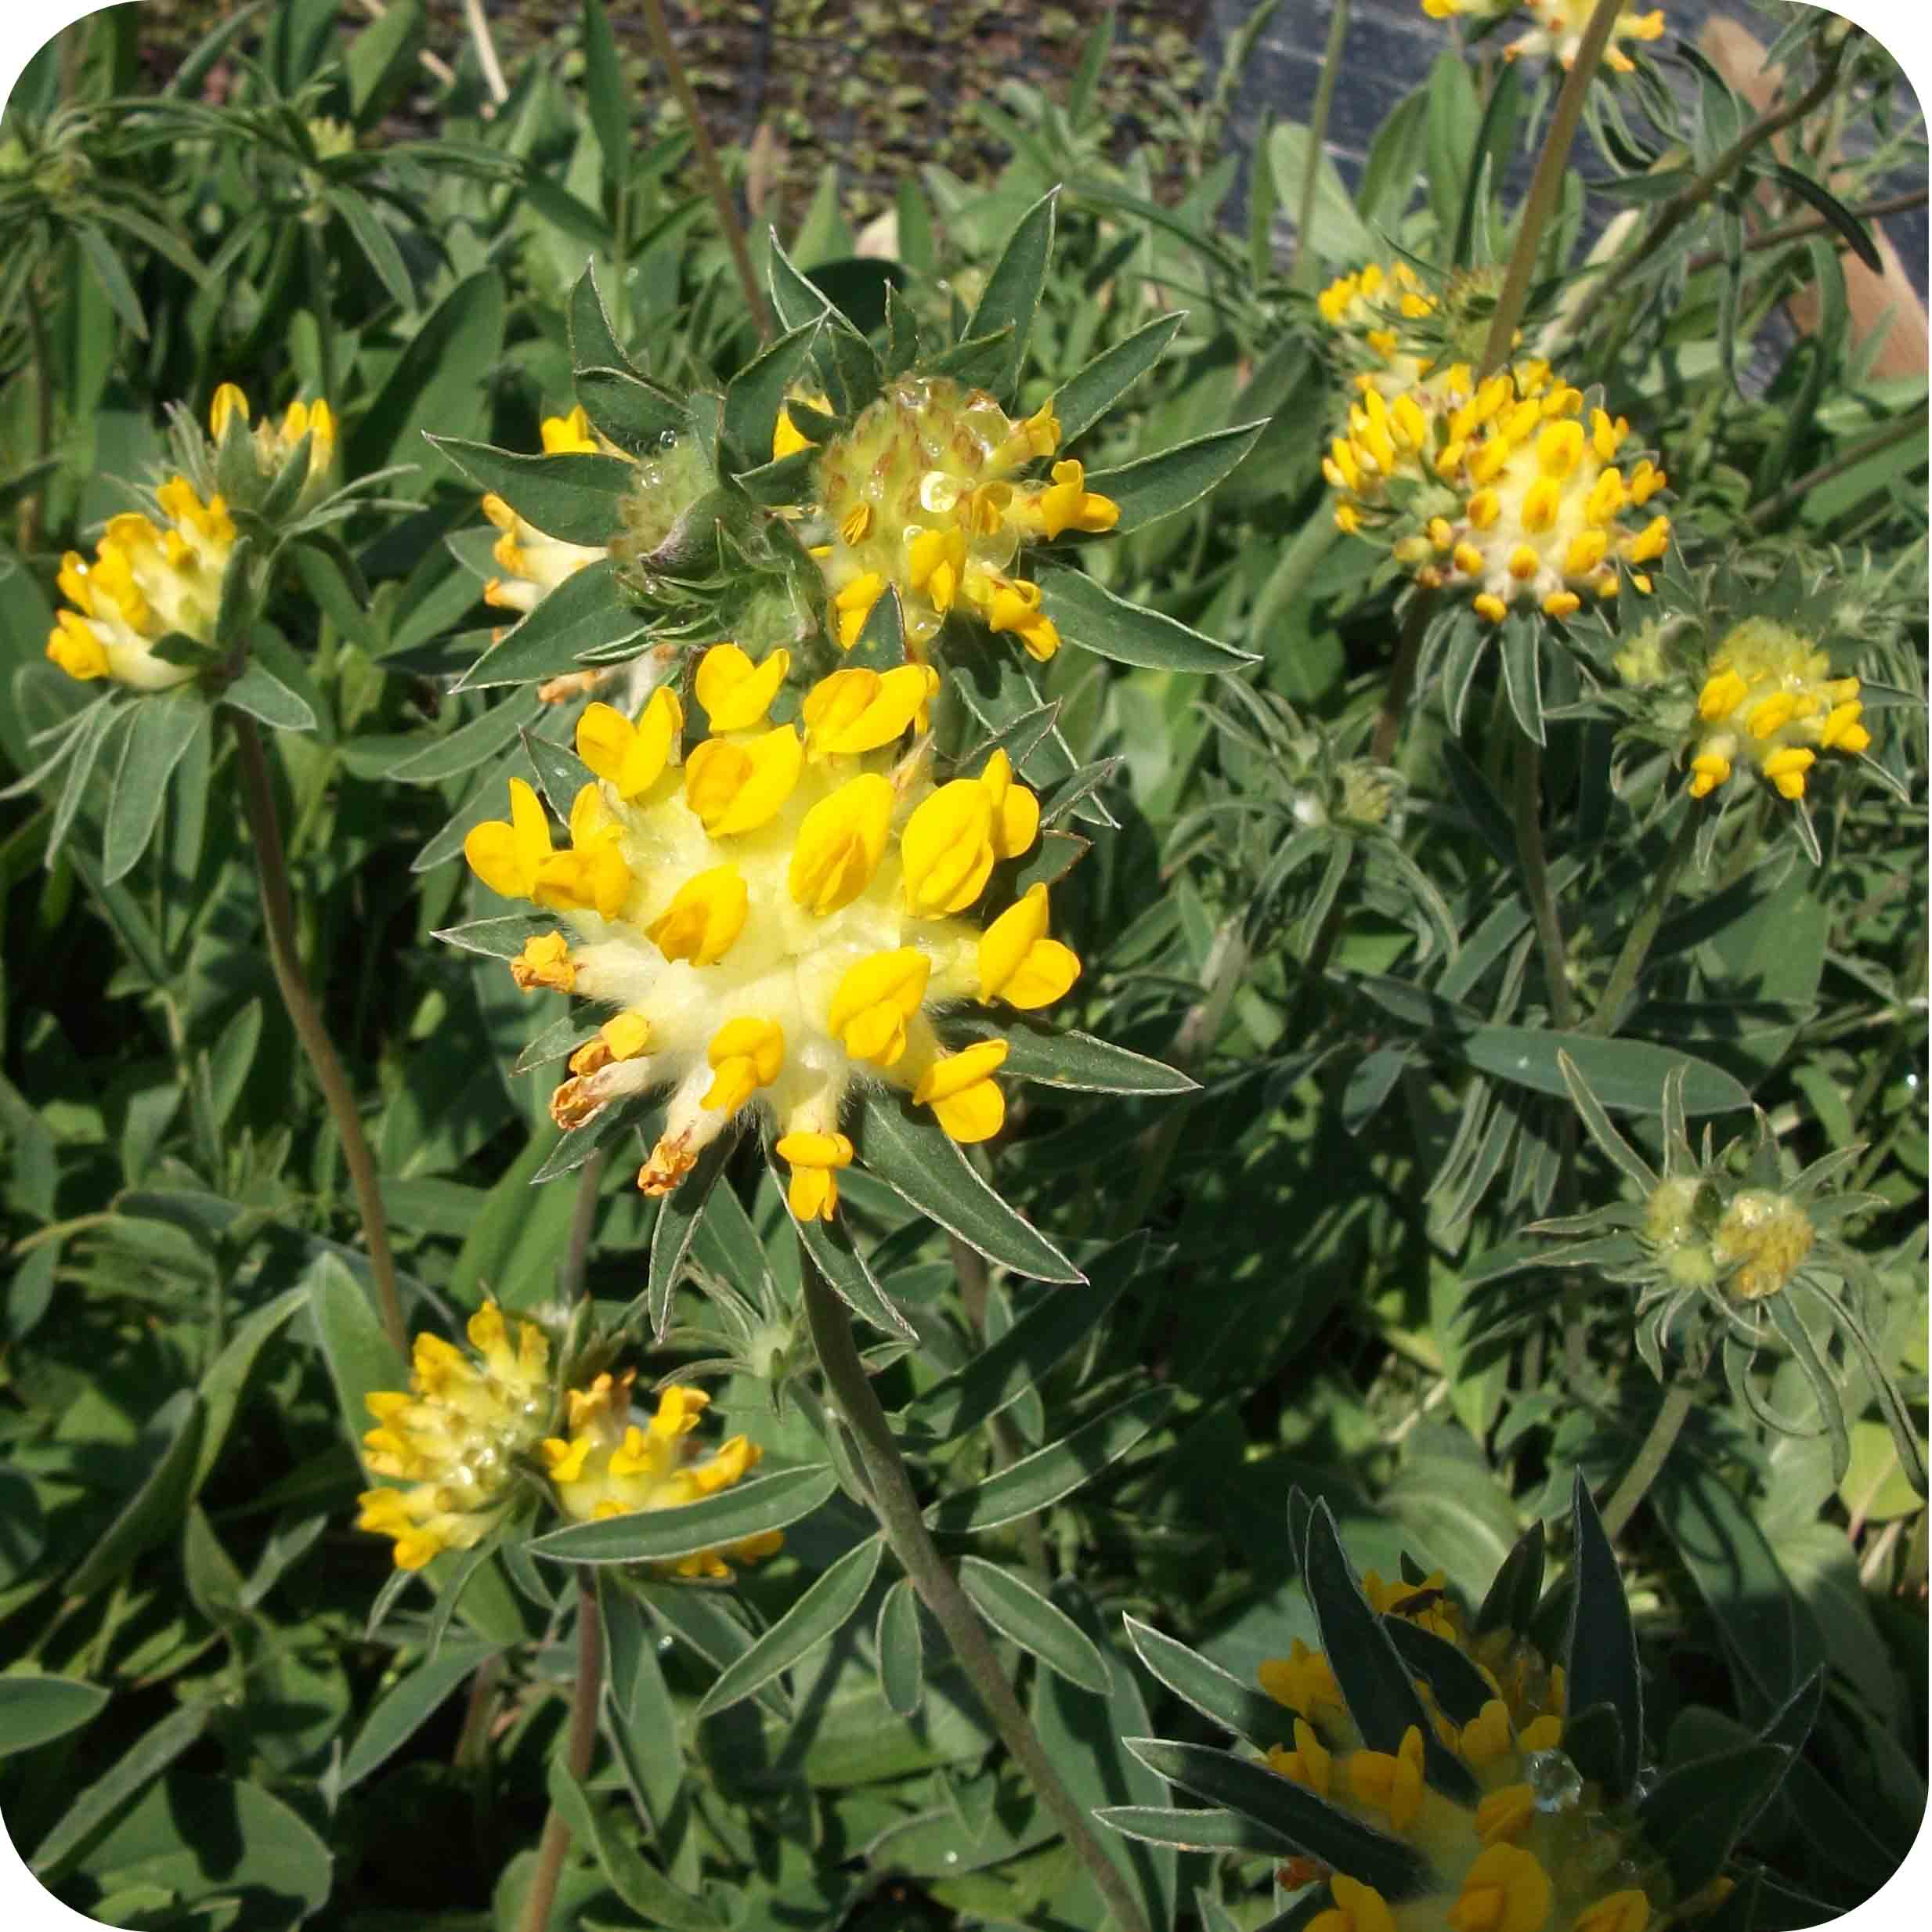 Kidney Vetch (Anthyllis vulneraria) plug plants